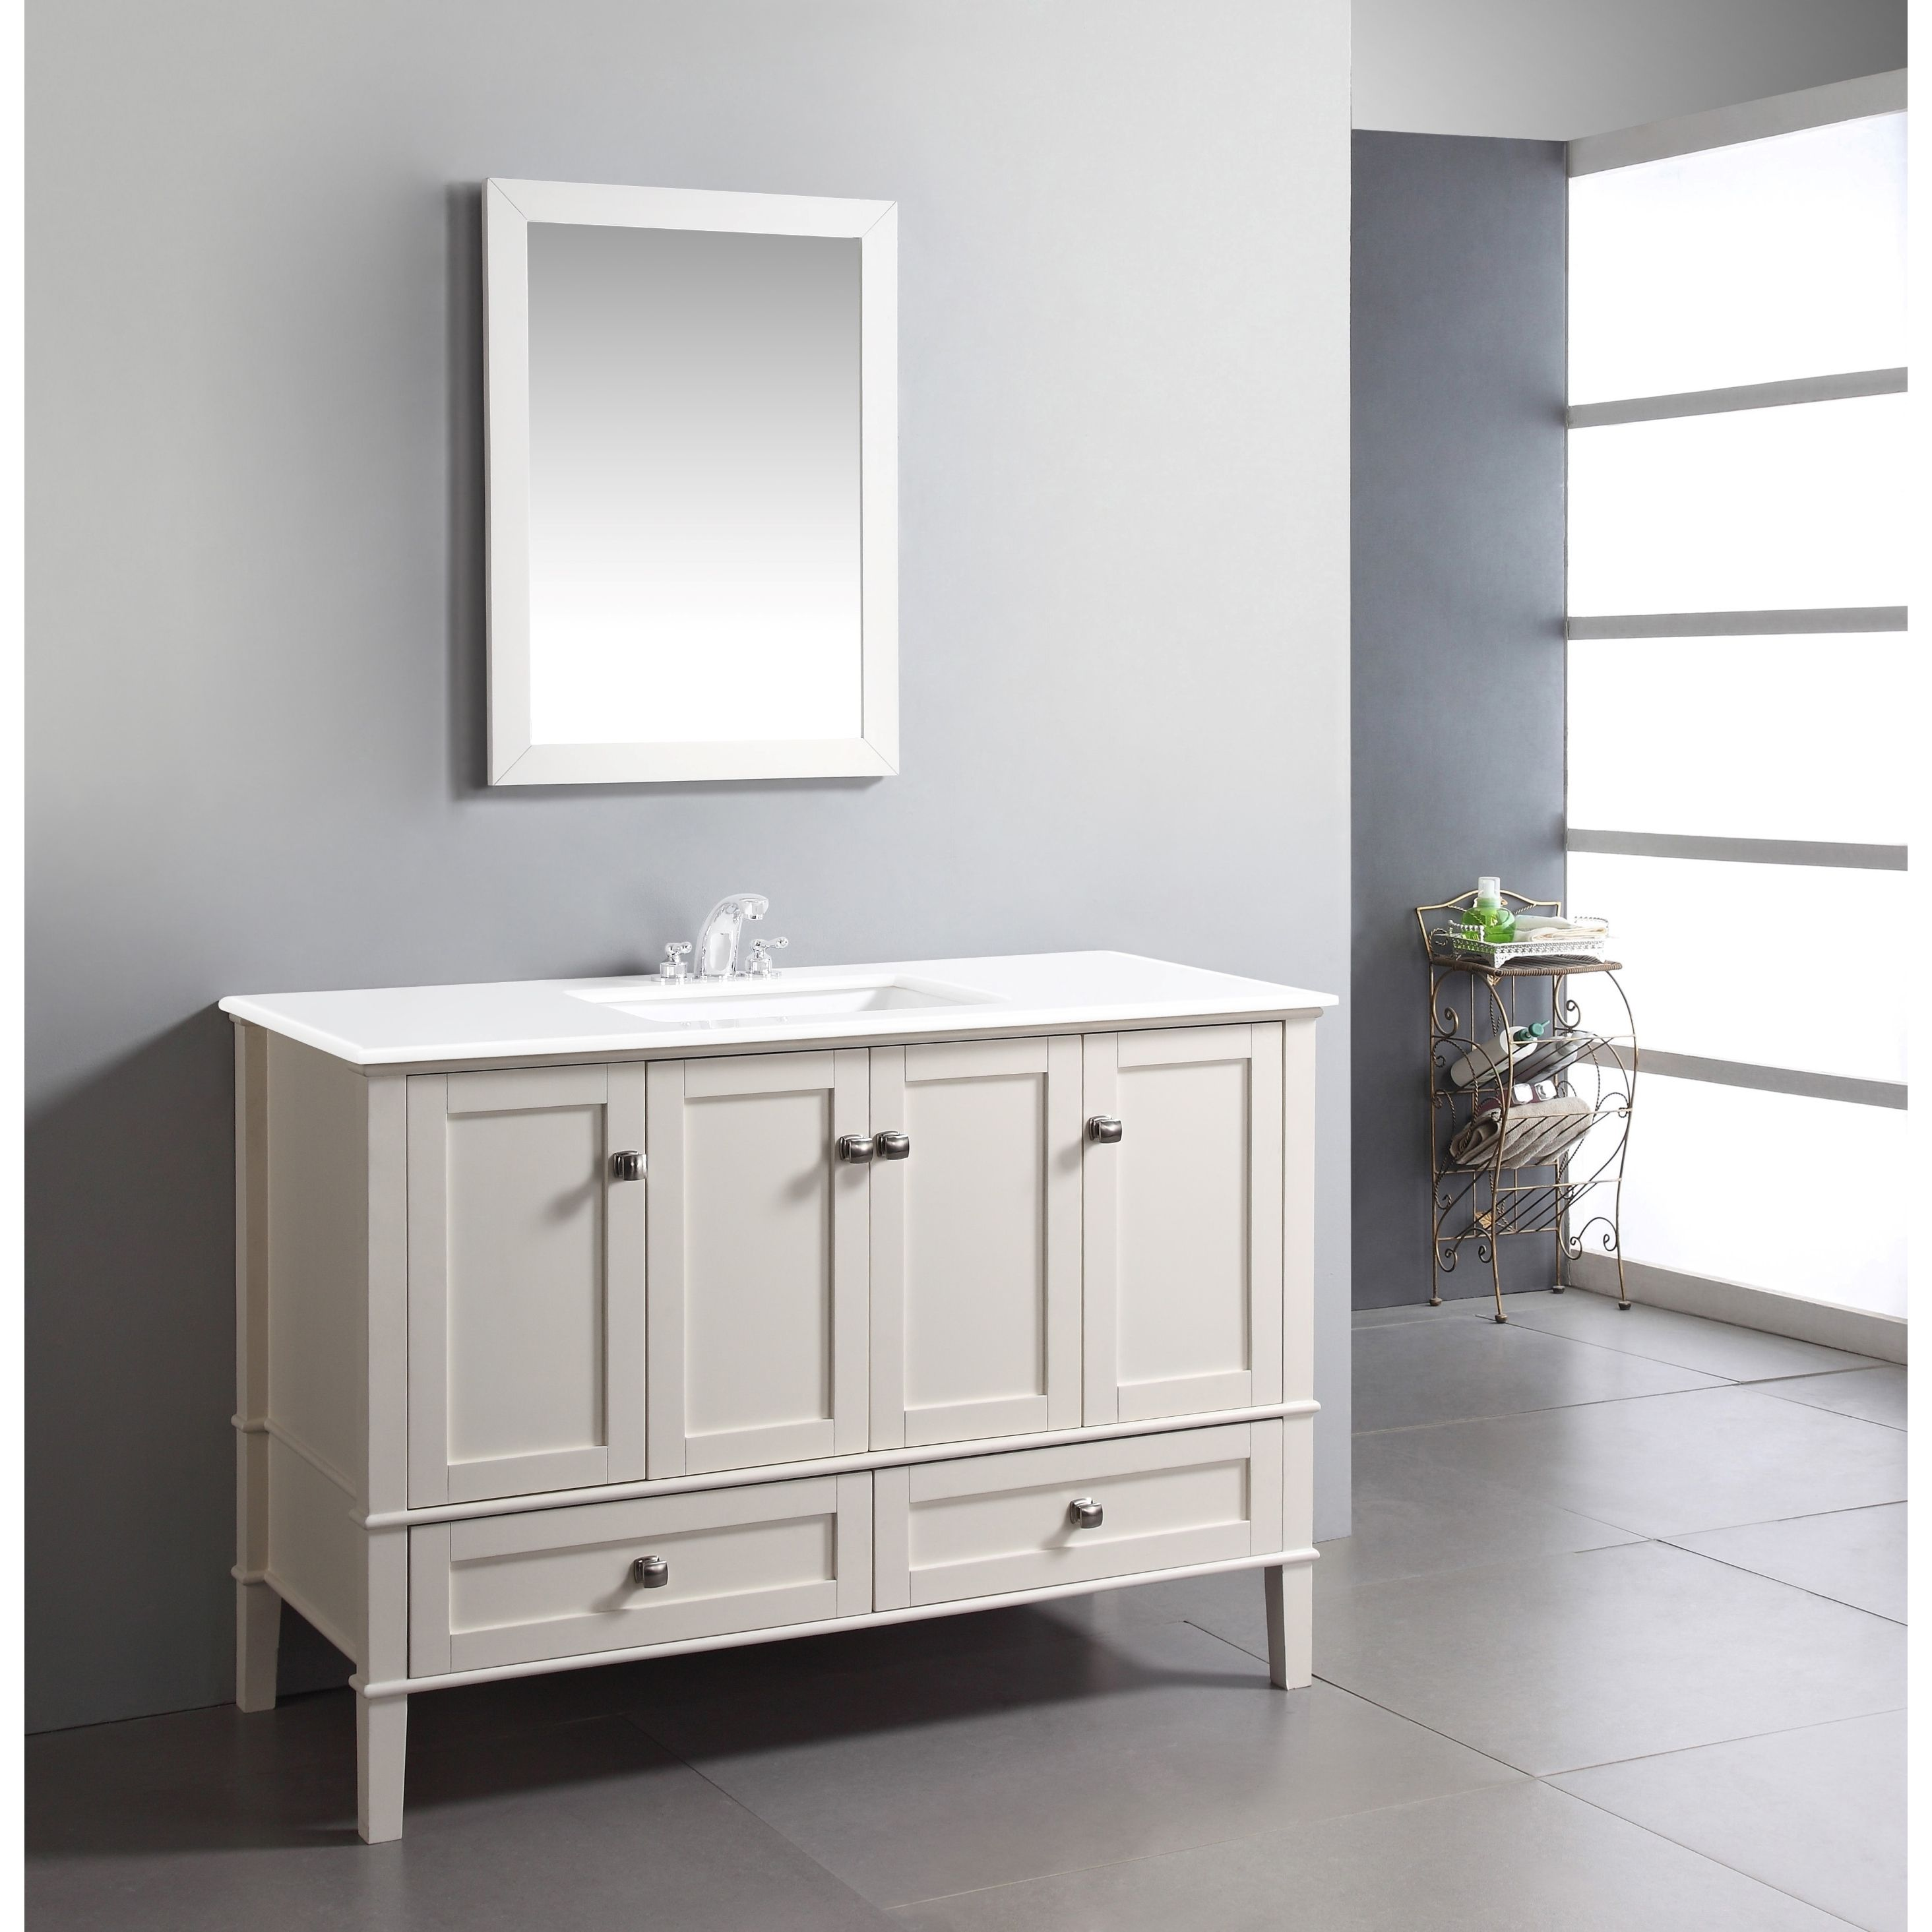 The 48-inch Windham Bathroom Vanity is defined by its soft white ...